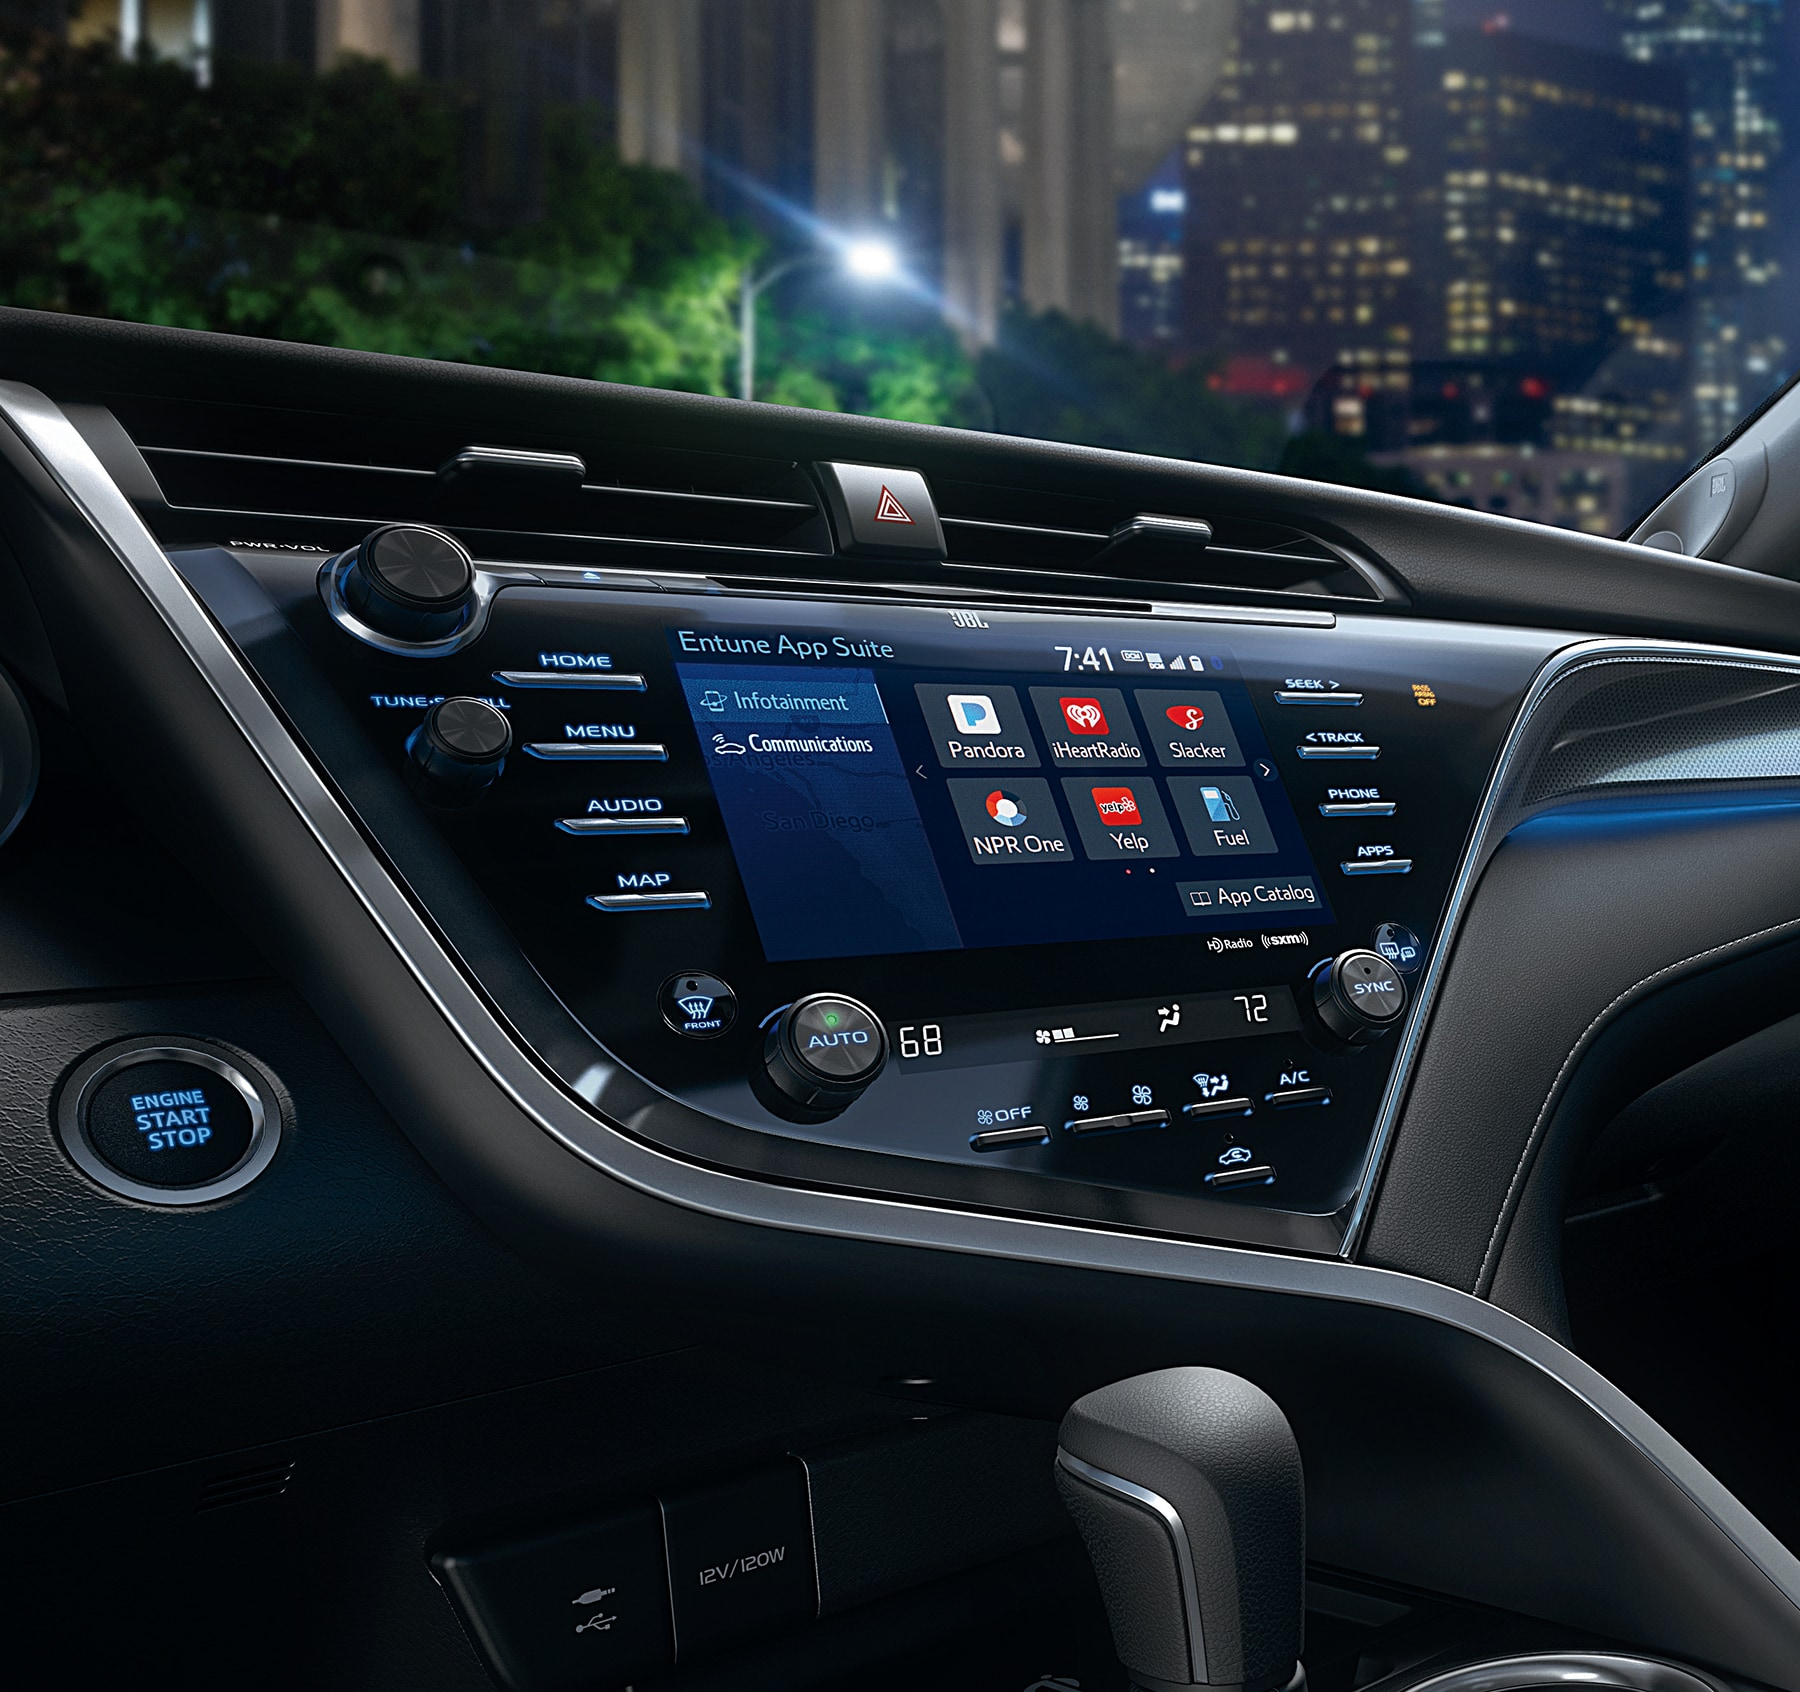 Dashboard of the 2018 Camry with Entune Audio System and Touchscreen